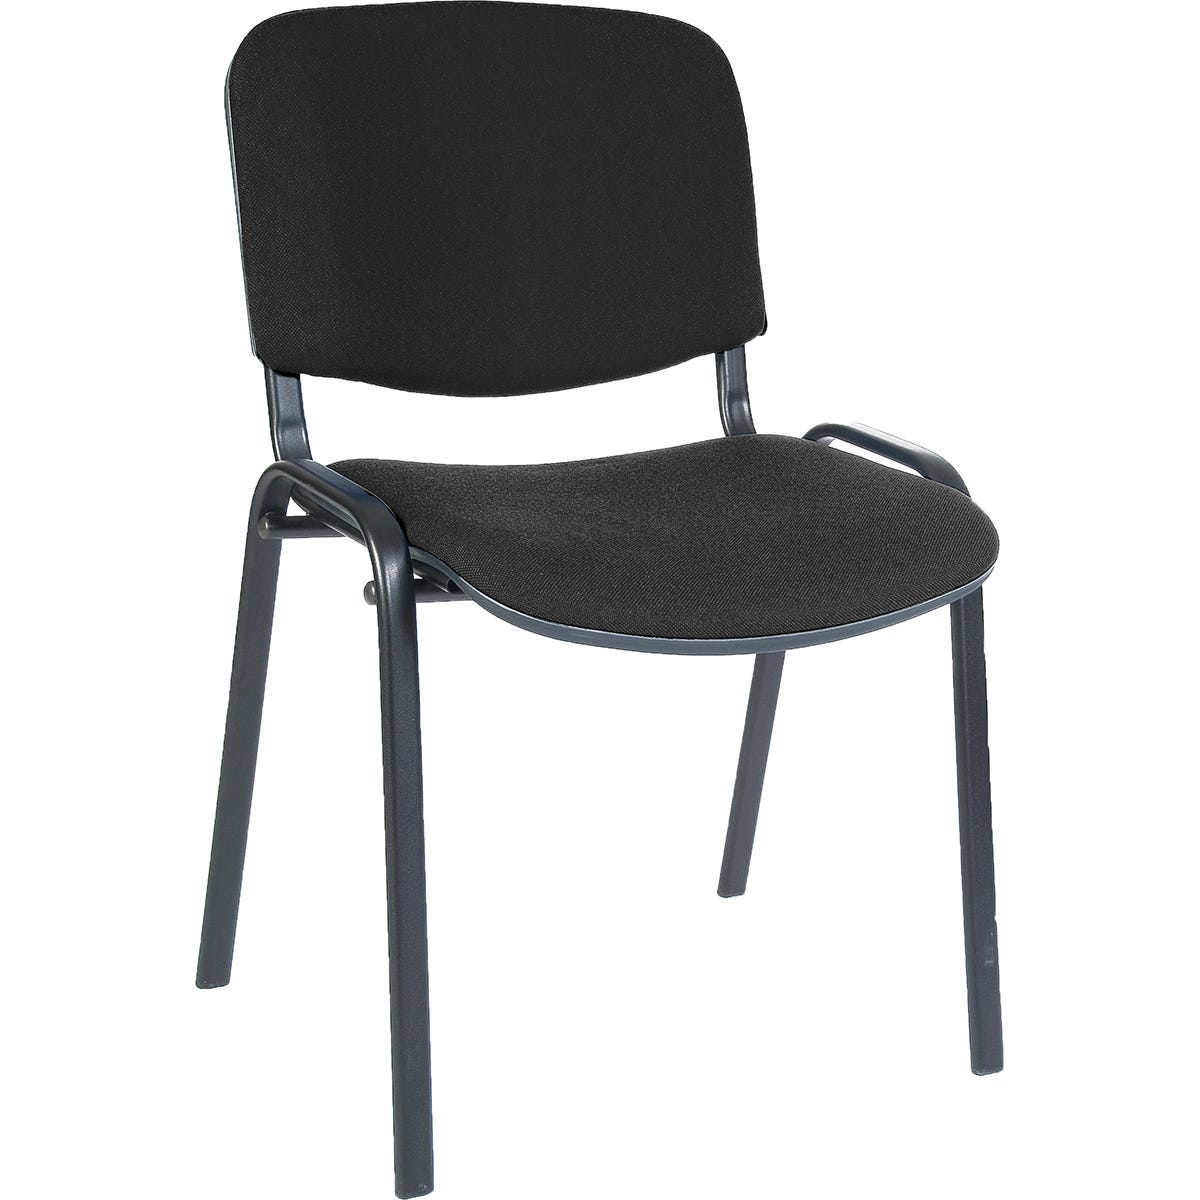 Teknik Office Stackable Conference Chair with Padded Seat and Backrest - Blue Fabric